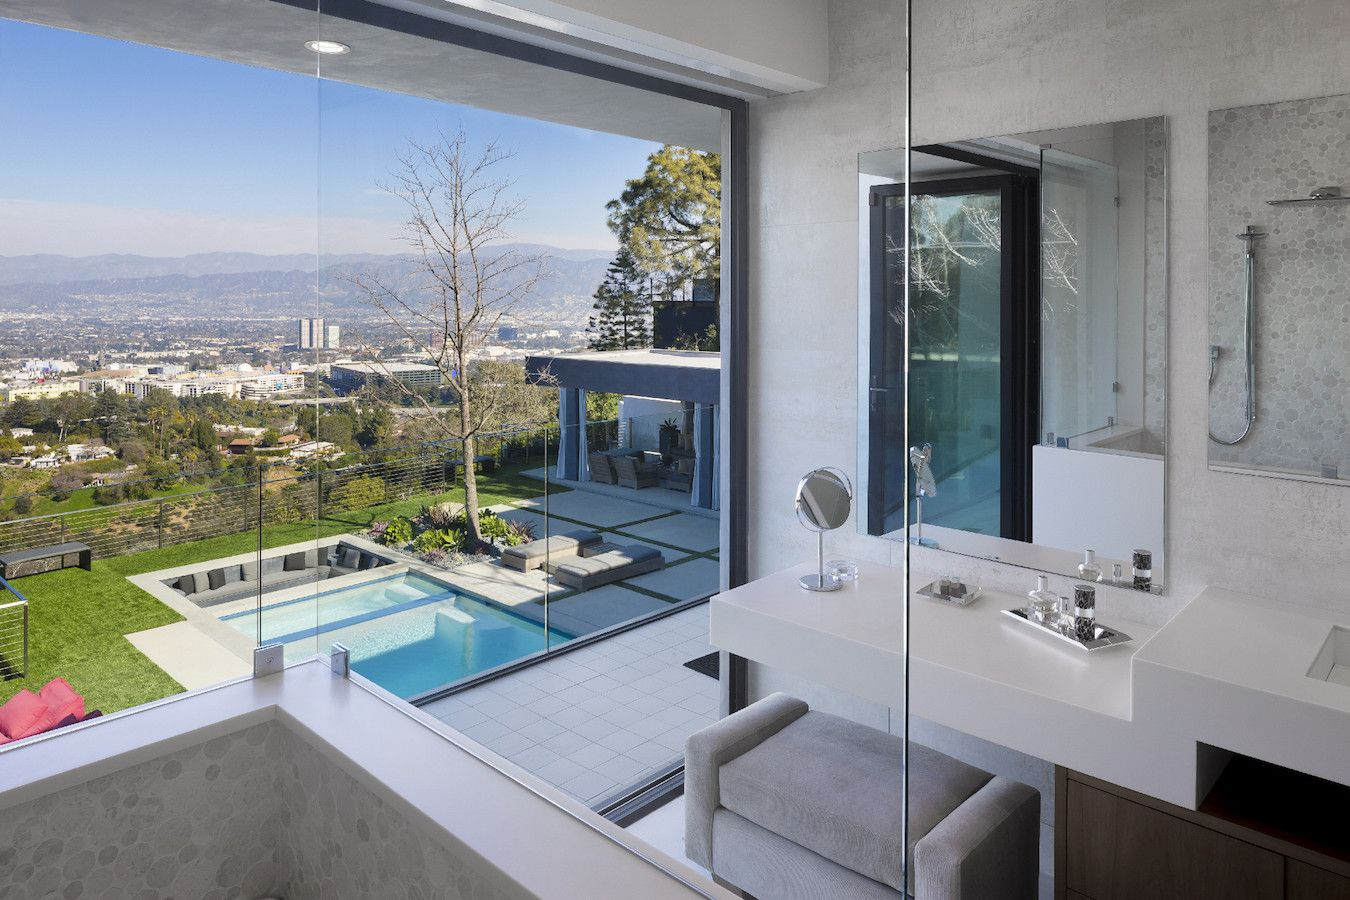 Privacy and a great view are two important elements of this glass walled bathroom.